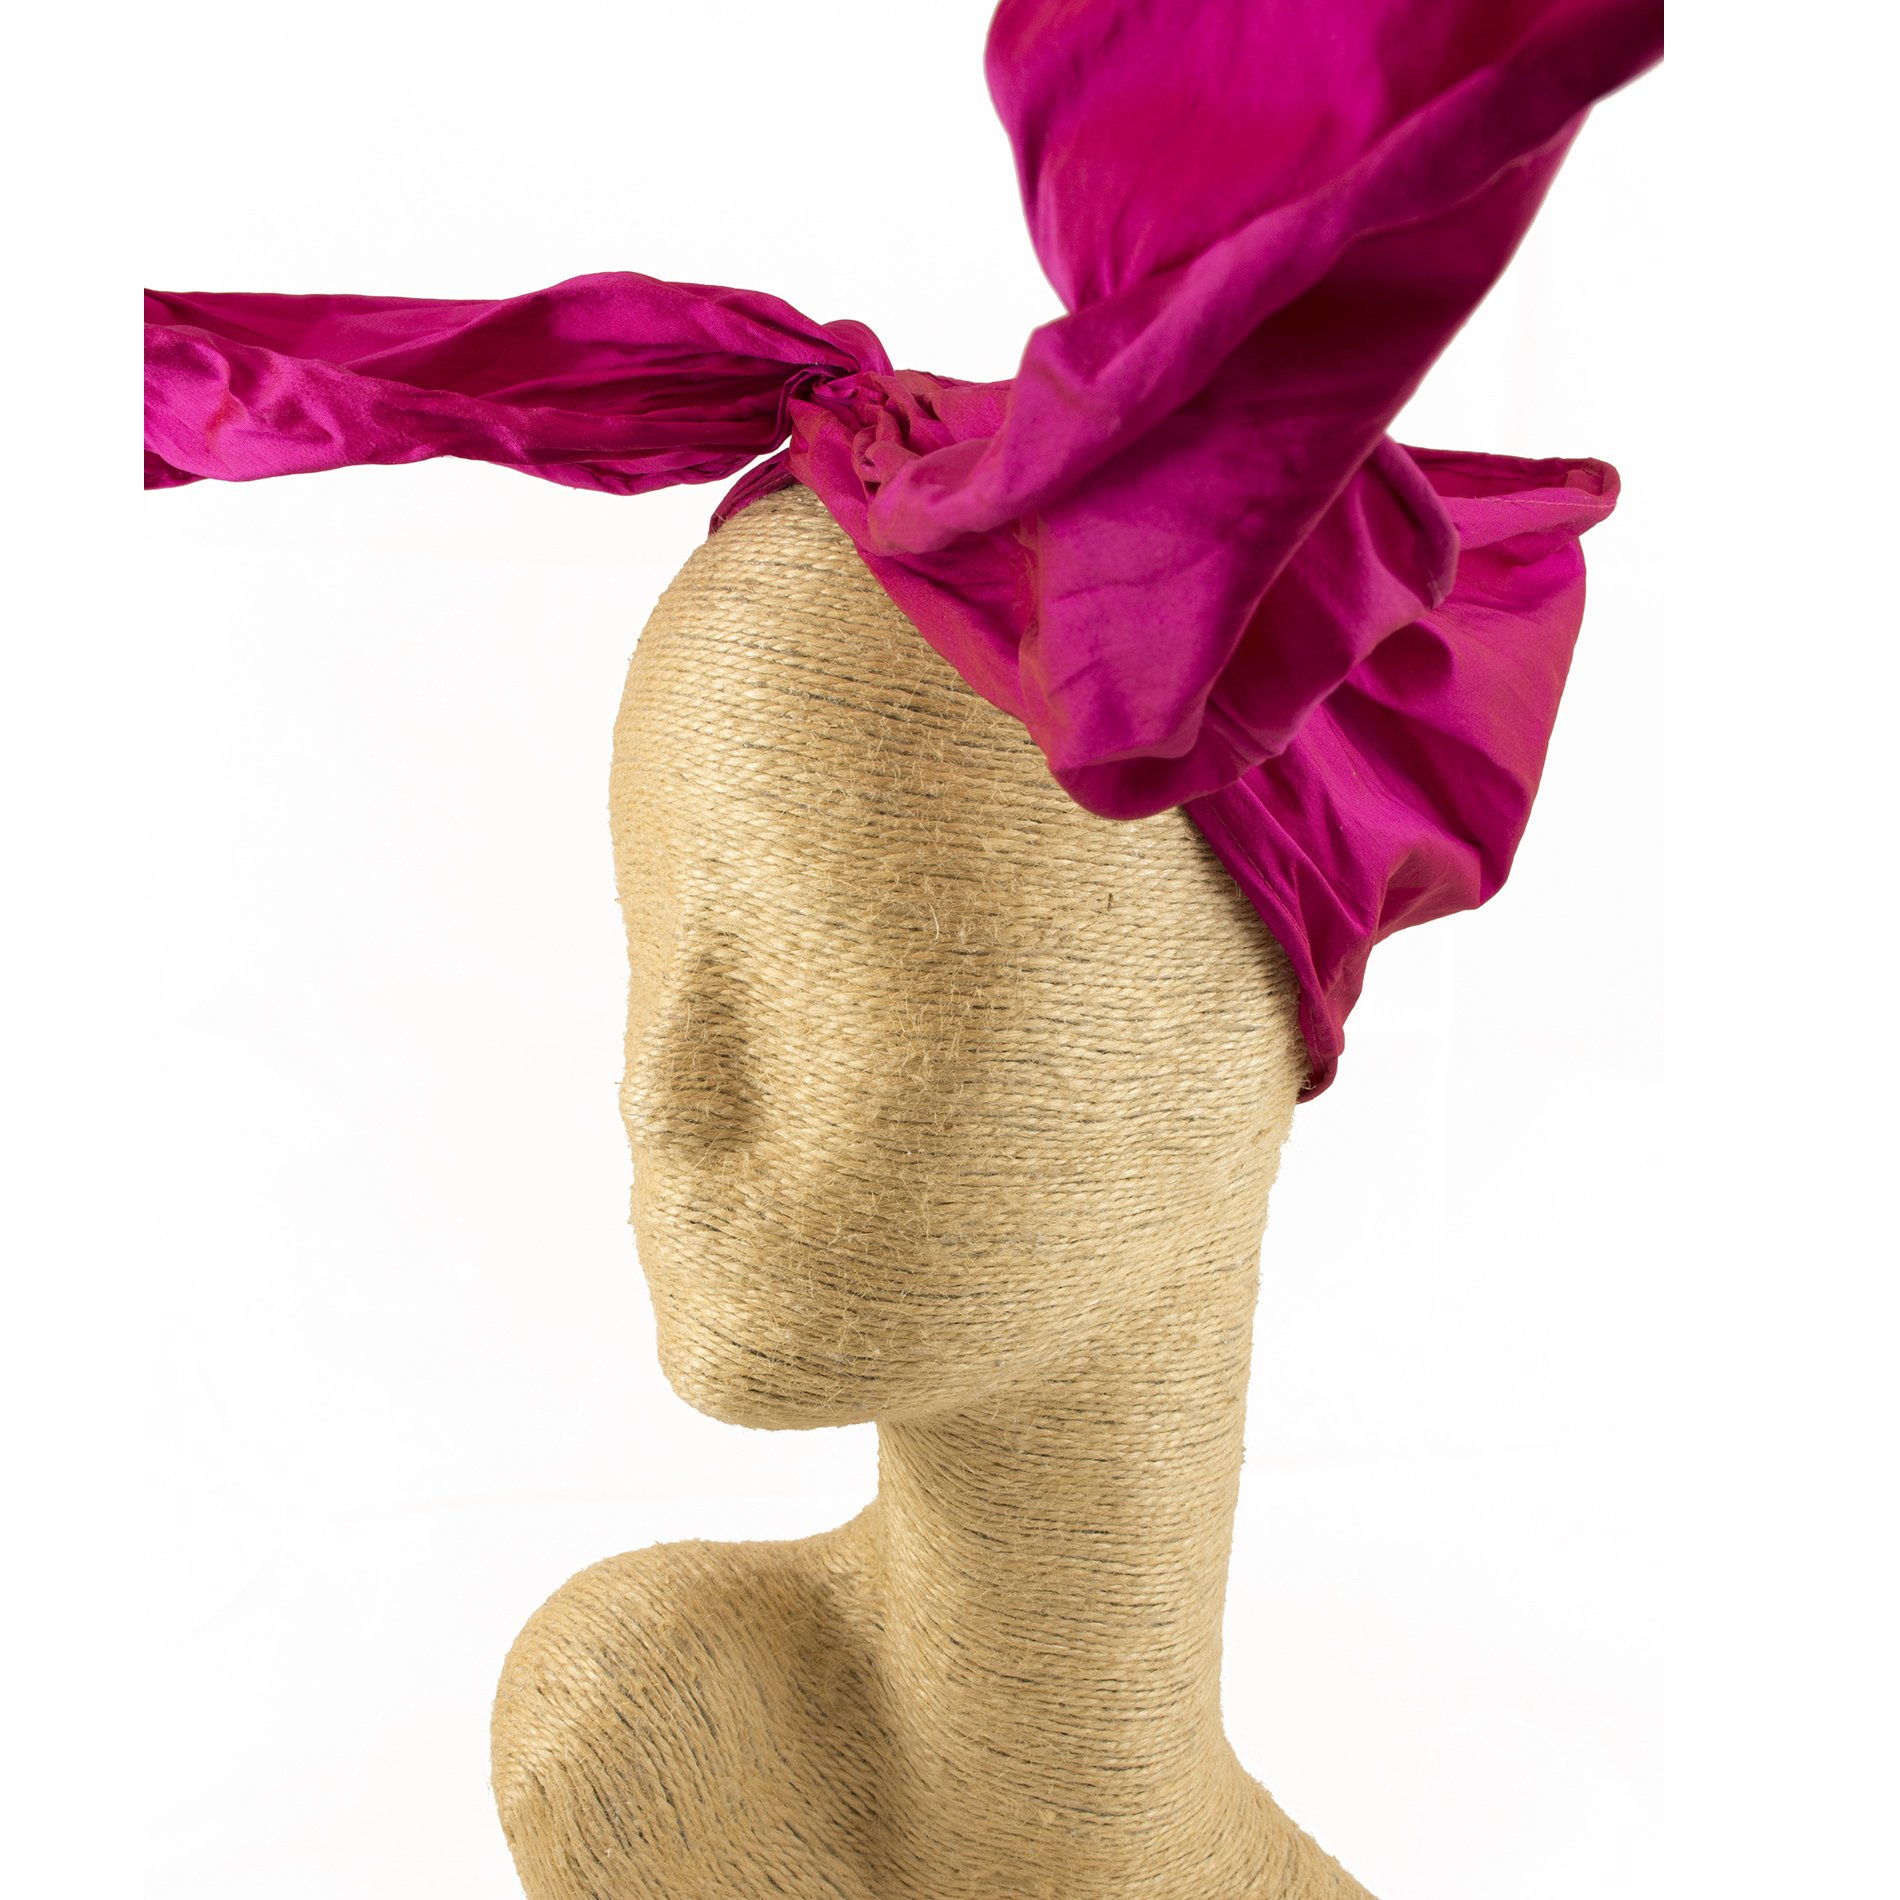 Fascinator, Silk Headbands, Millinery, Worldwide Free Shipment, Delivery in 2 Days, Customized Tailoring, Designer Fashion, Head wrap, Bohemian Accessories, Hot Pink, Boho Chic, Gift Box